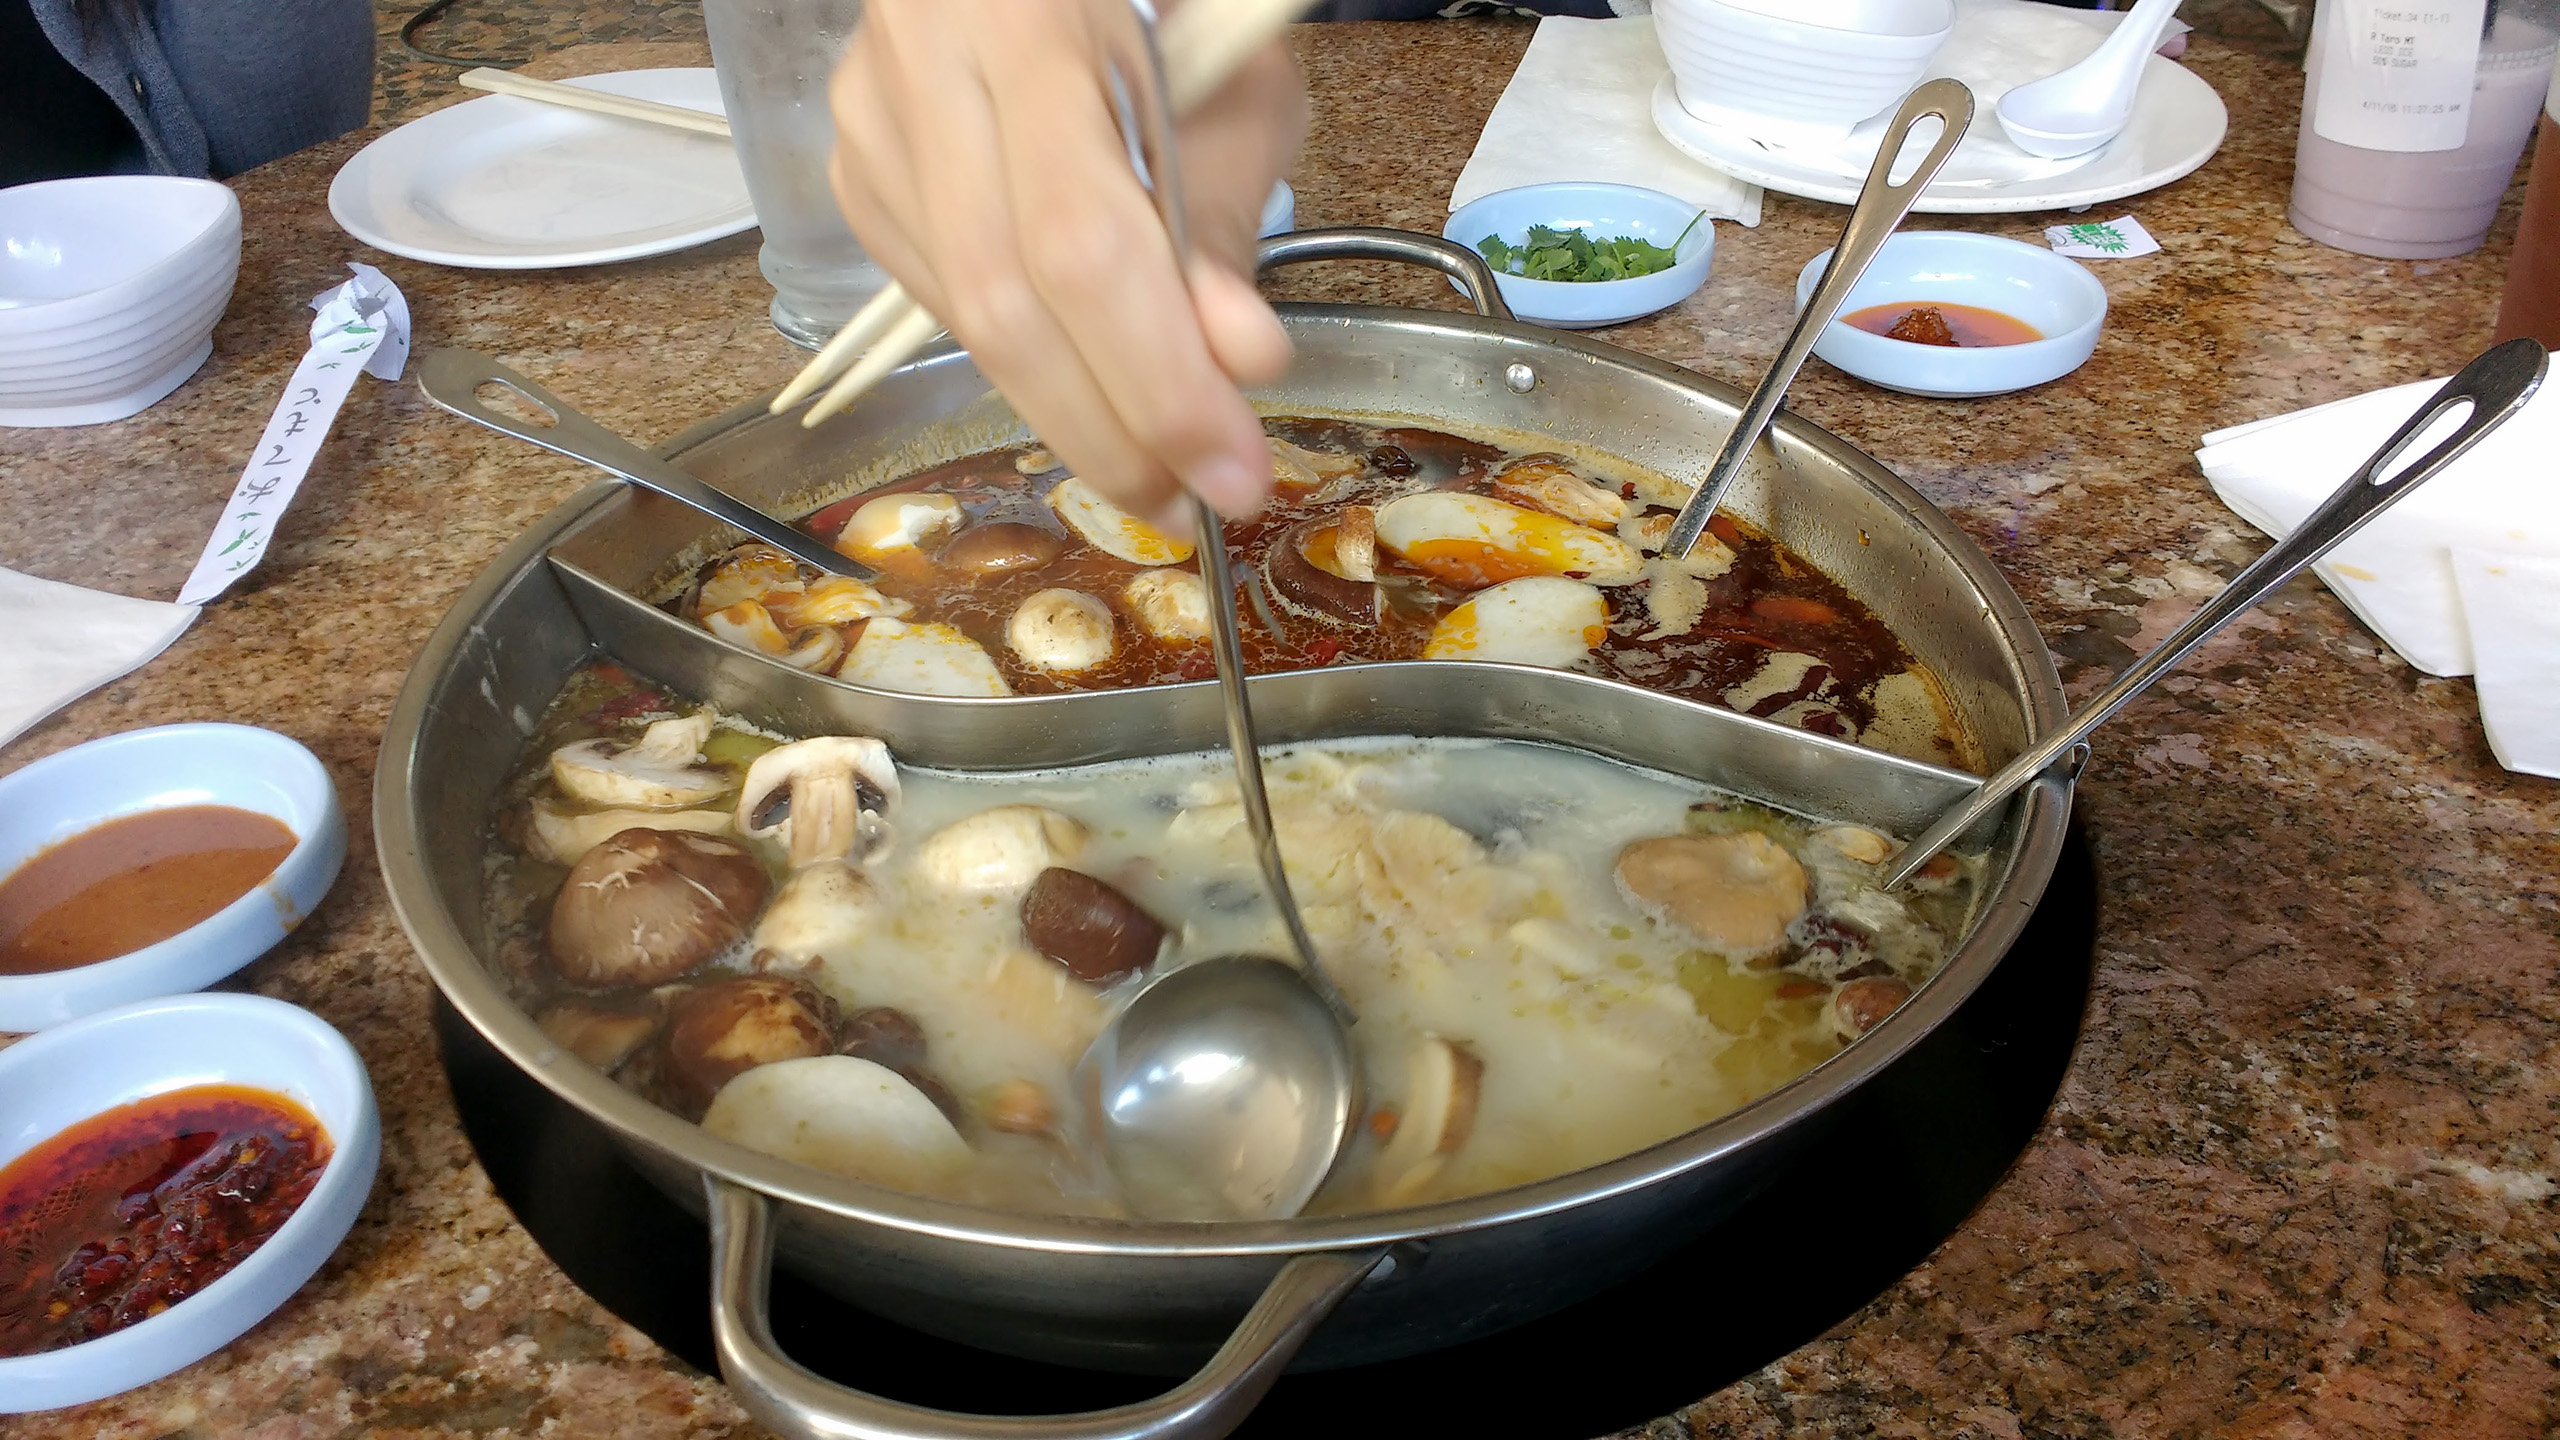 a large hot pot filled with ingredients in the center of a dining table. The hot pot is divided into two halves (mild and spicy) with a metal divider in the shape of a yin yang sign